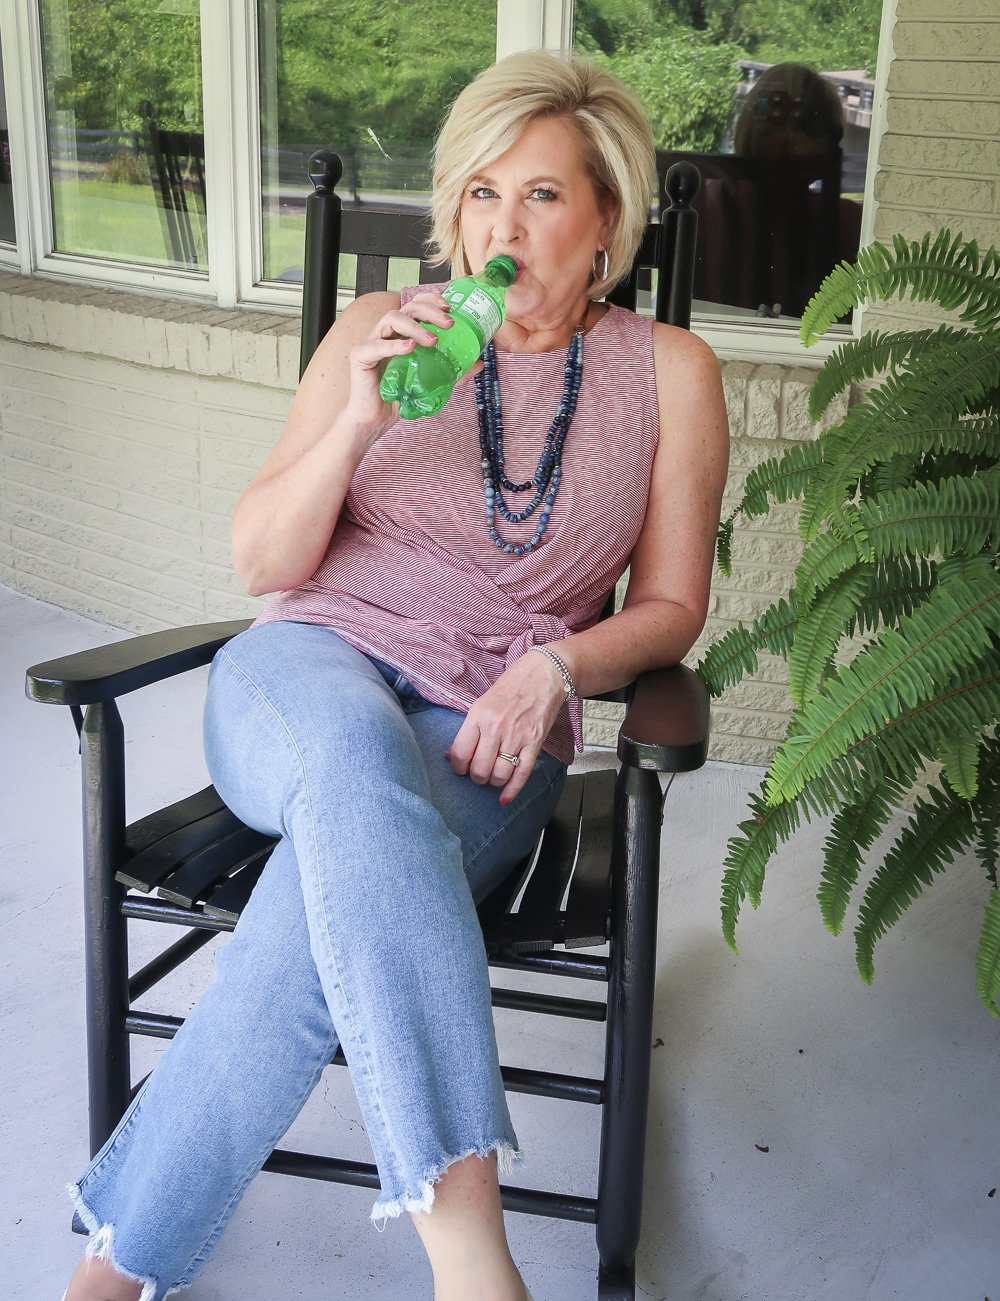 Fashion Blogger 50 Is Not Old is ready for celebrating Labor Day and drinking her Sprite while wearing a red white and blue top twist top, distressed jeans, and Sperry sneakers